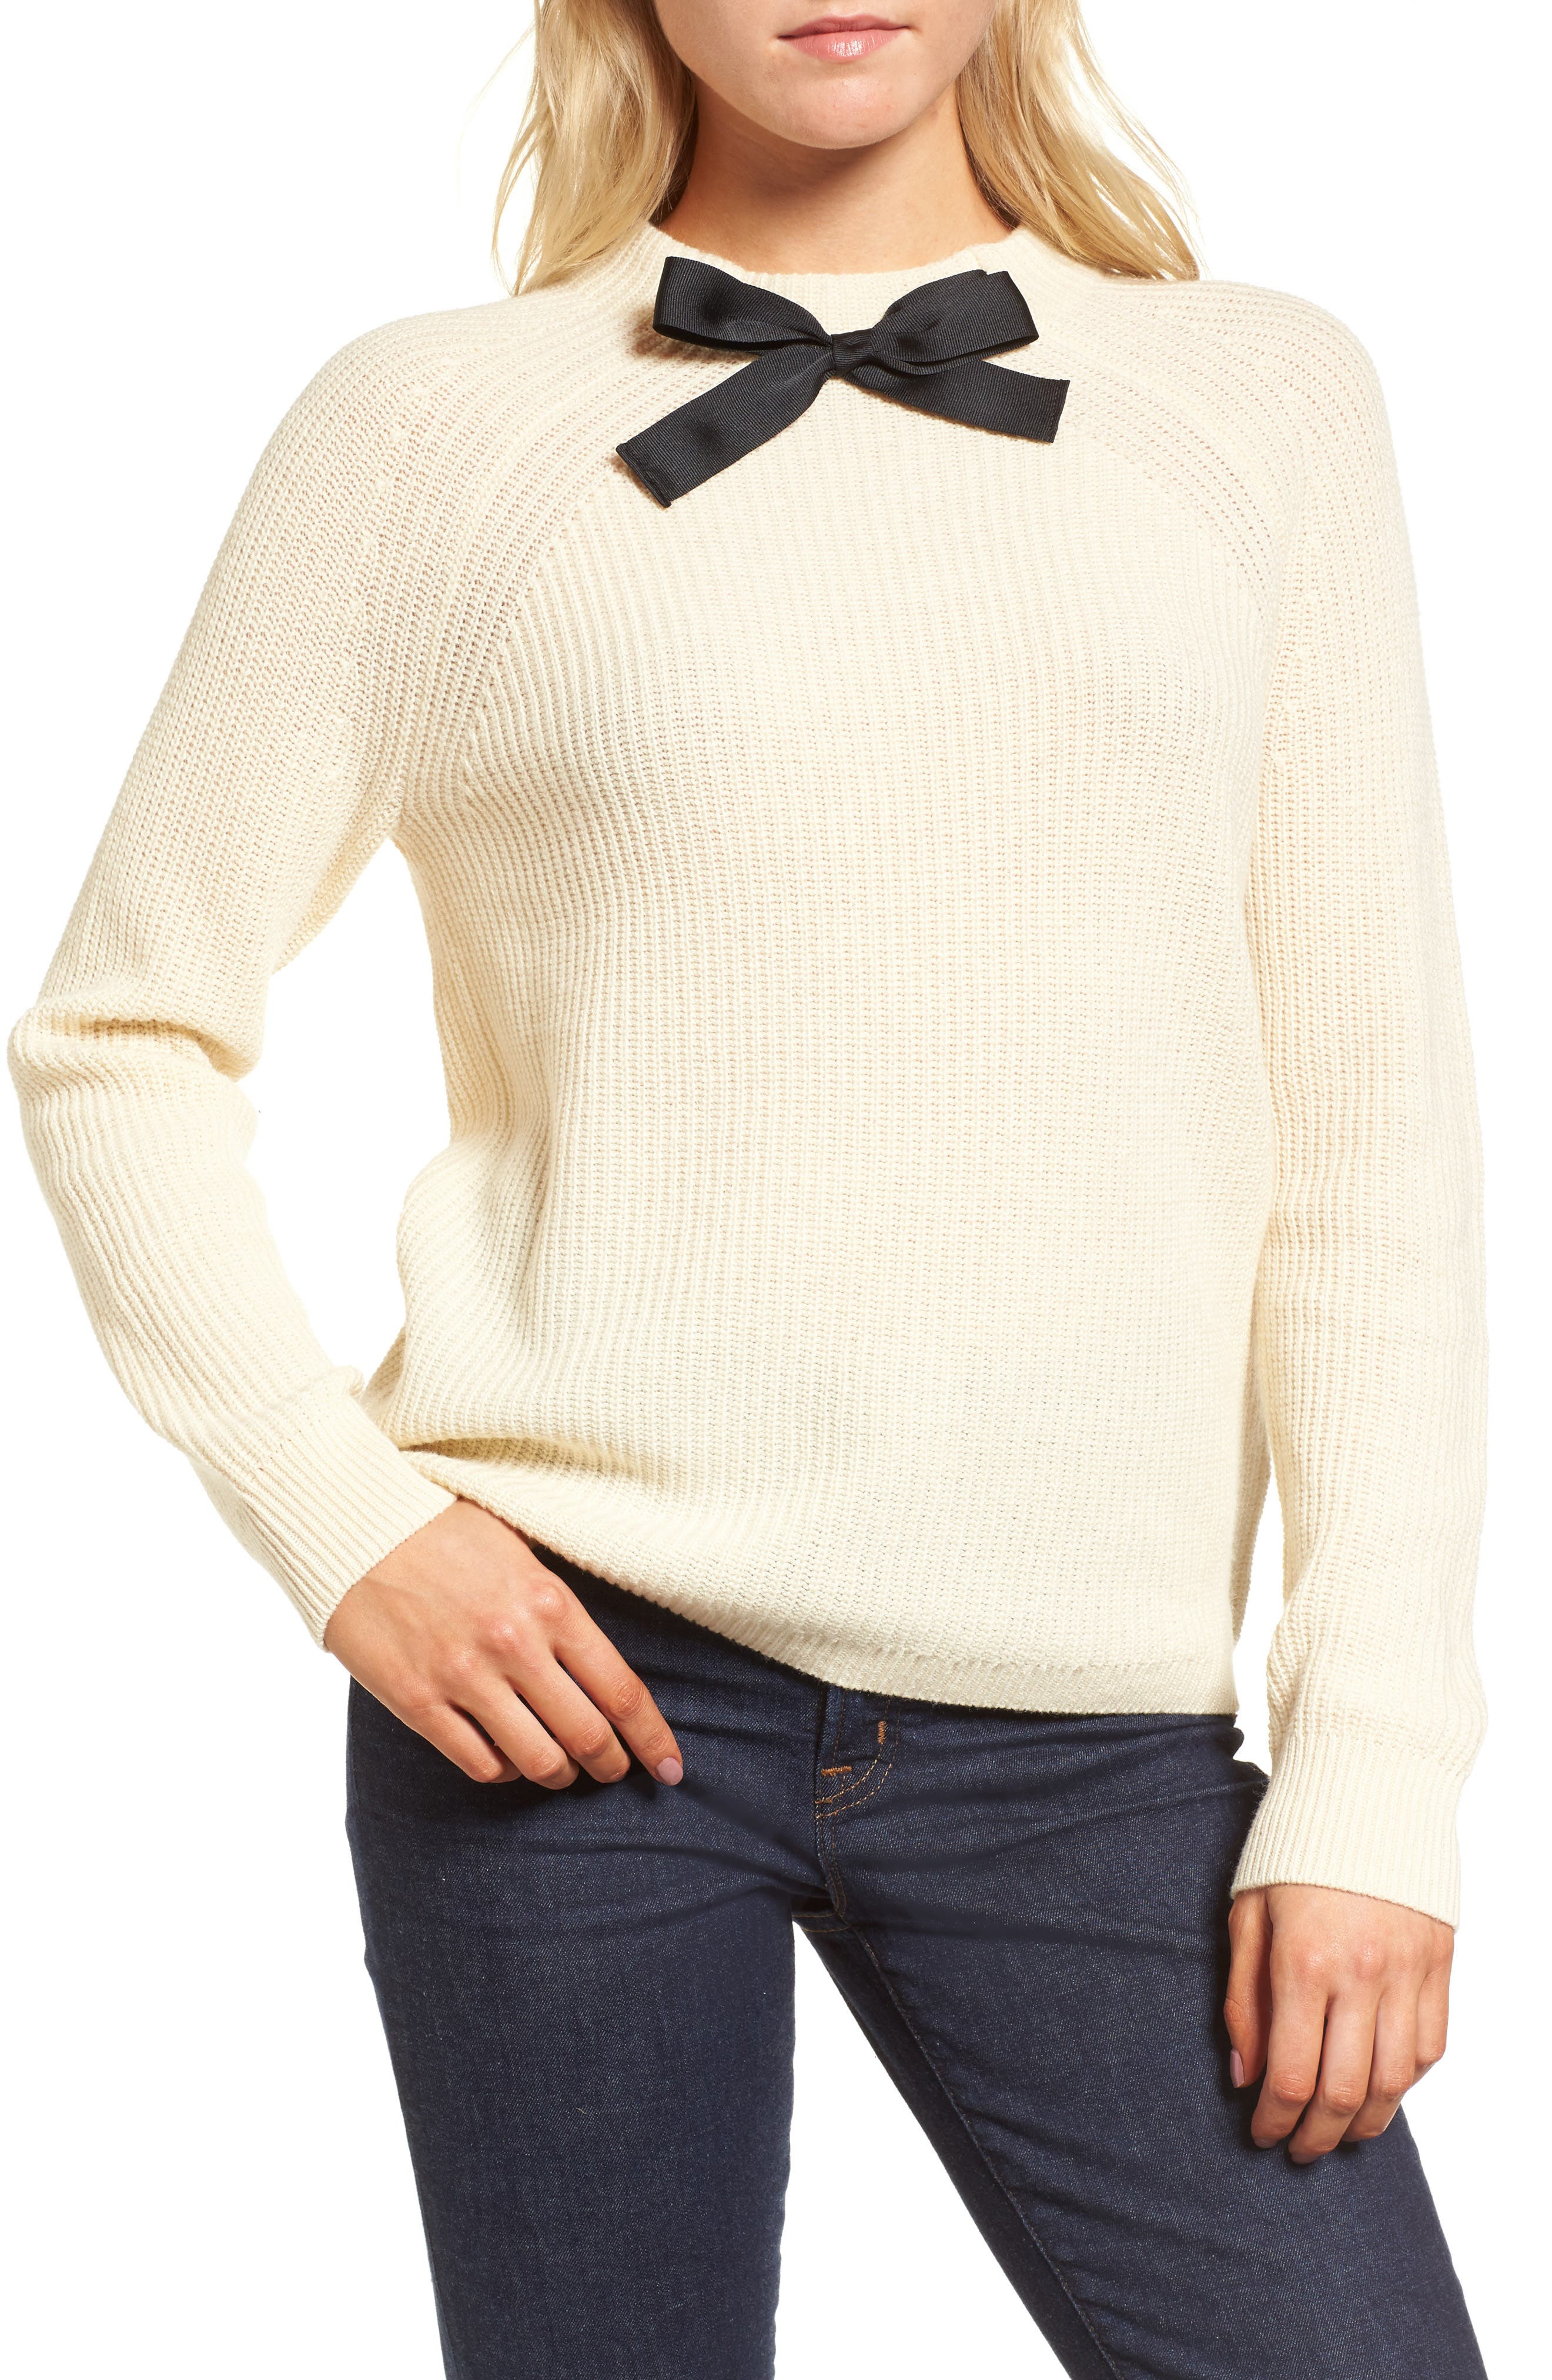 J.Crew Gayle Tie Neck Sweater